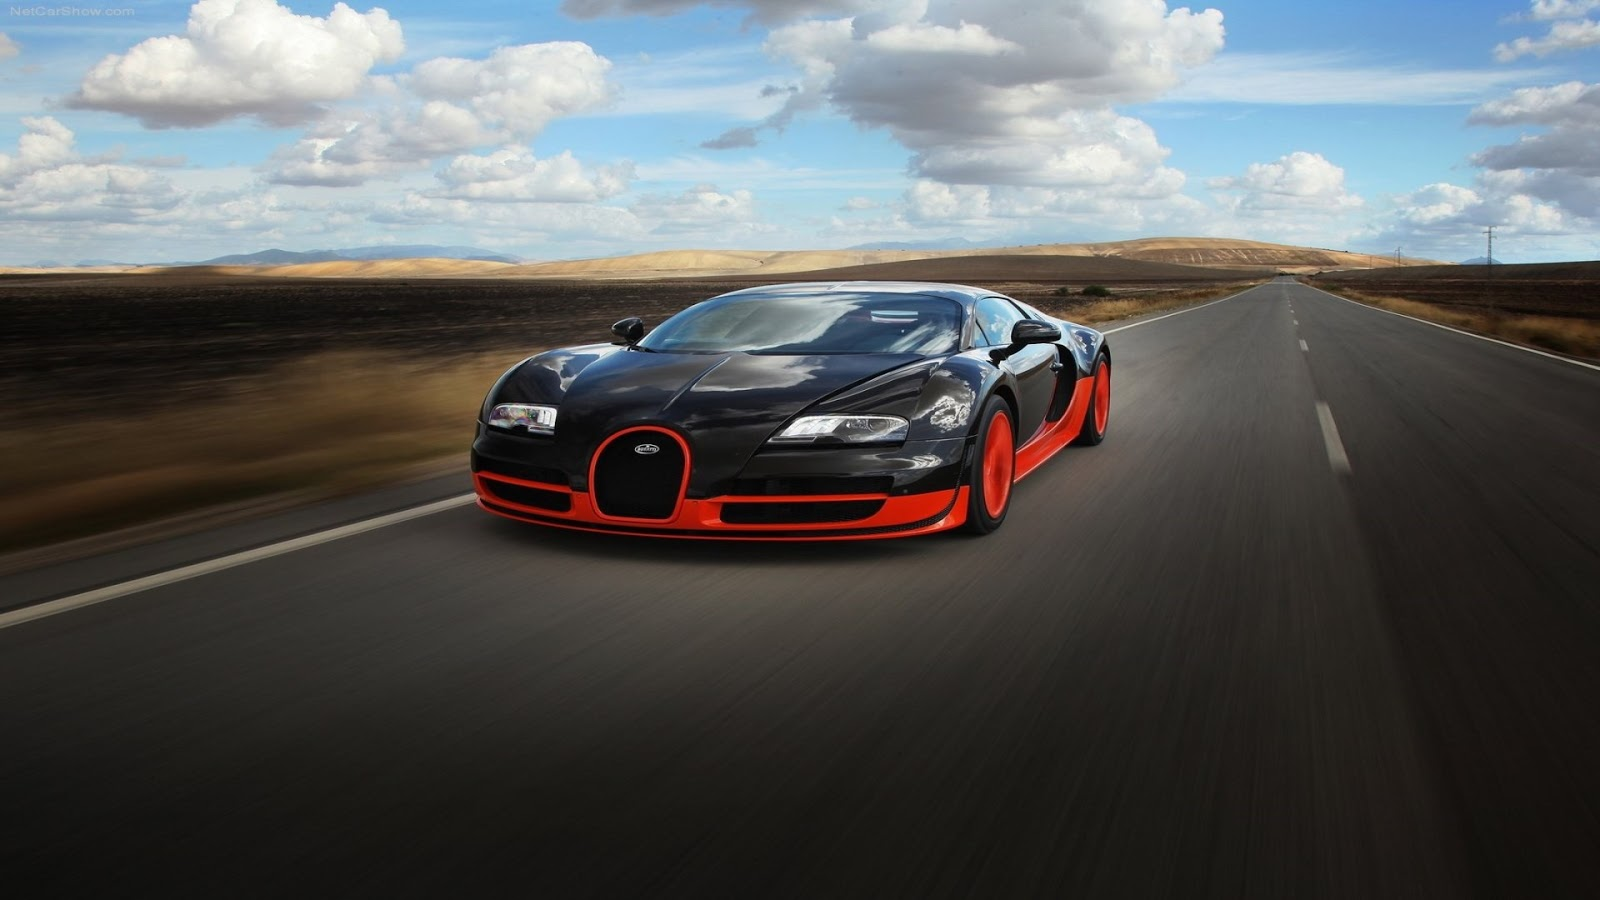 bugatti veyron sports cars hd wallpapers download 1080p hdwallpapers1080px. Black Bedroom Furniture Sets. Home Design Ideas